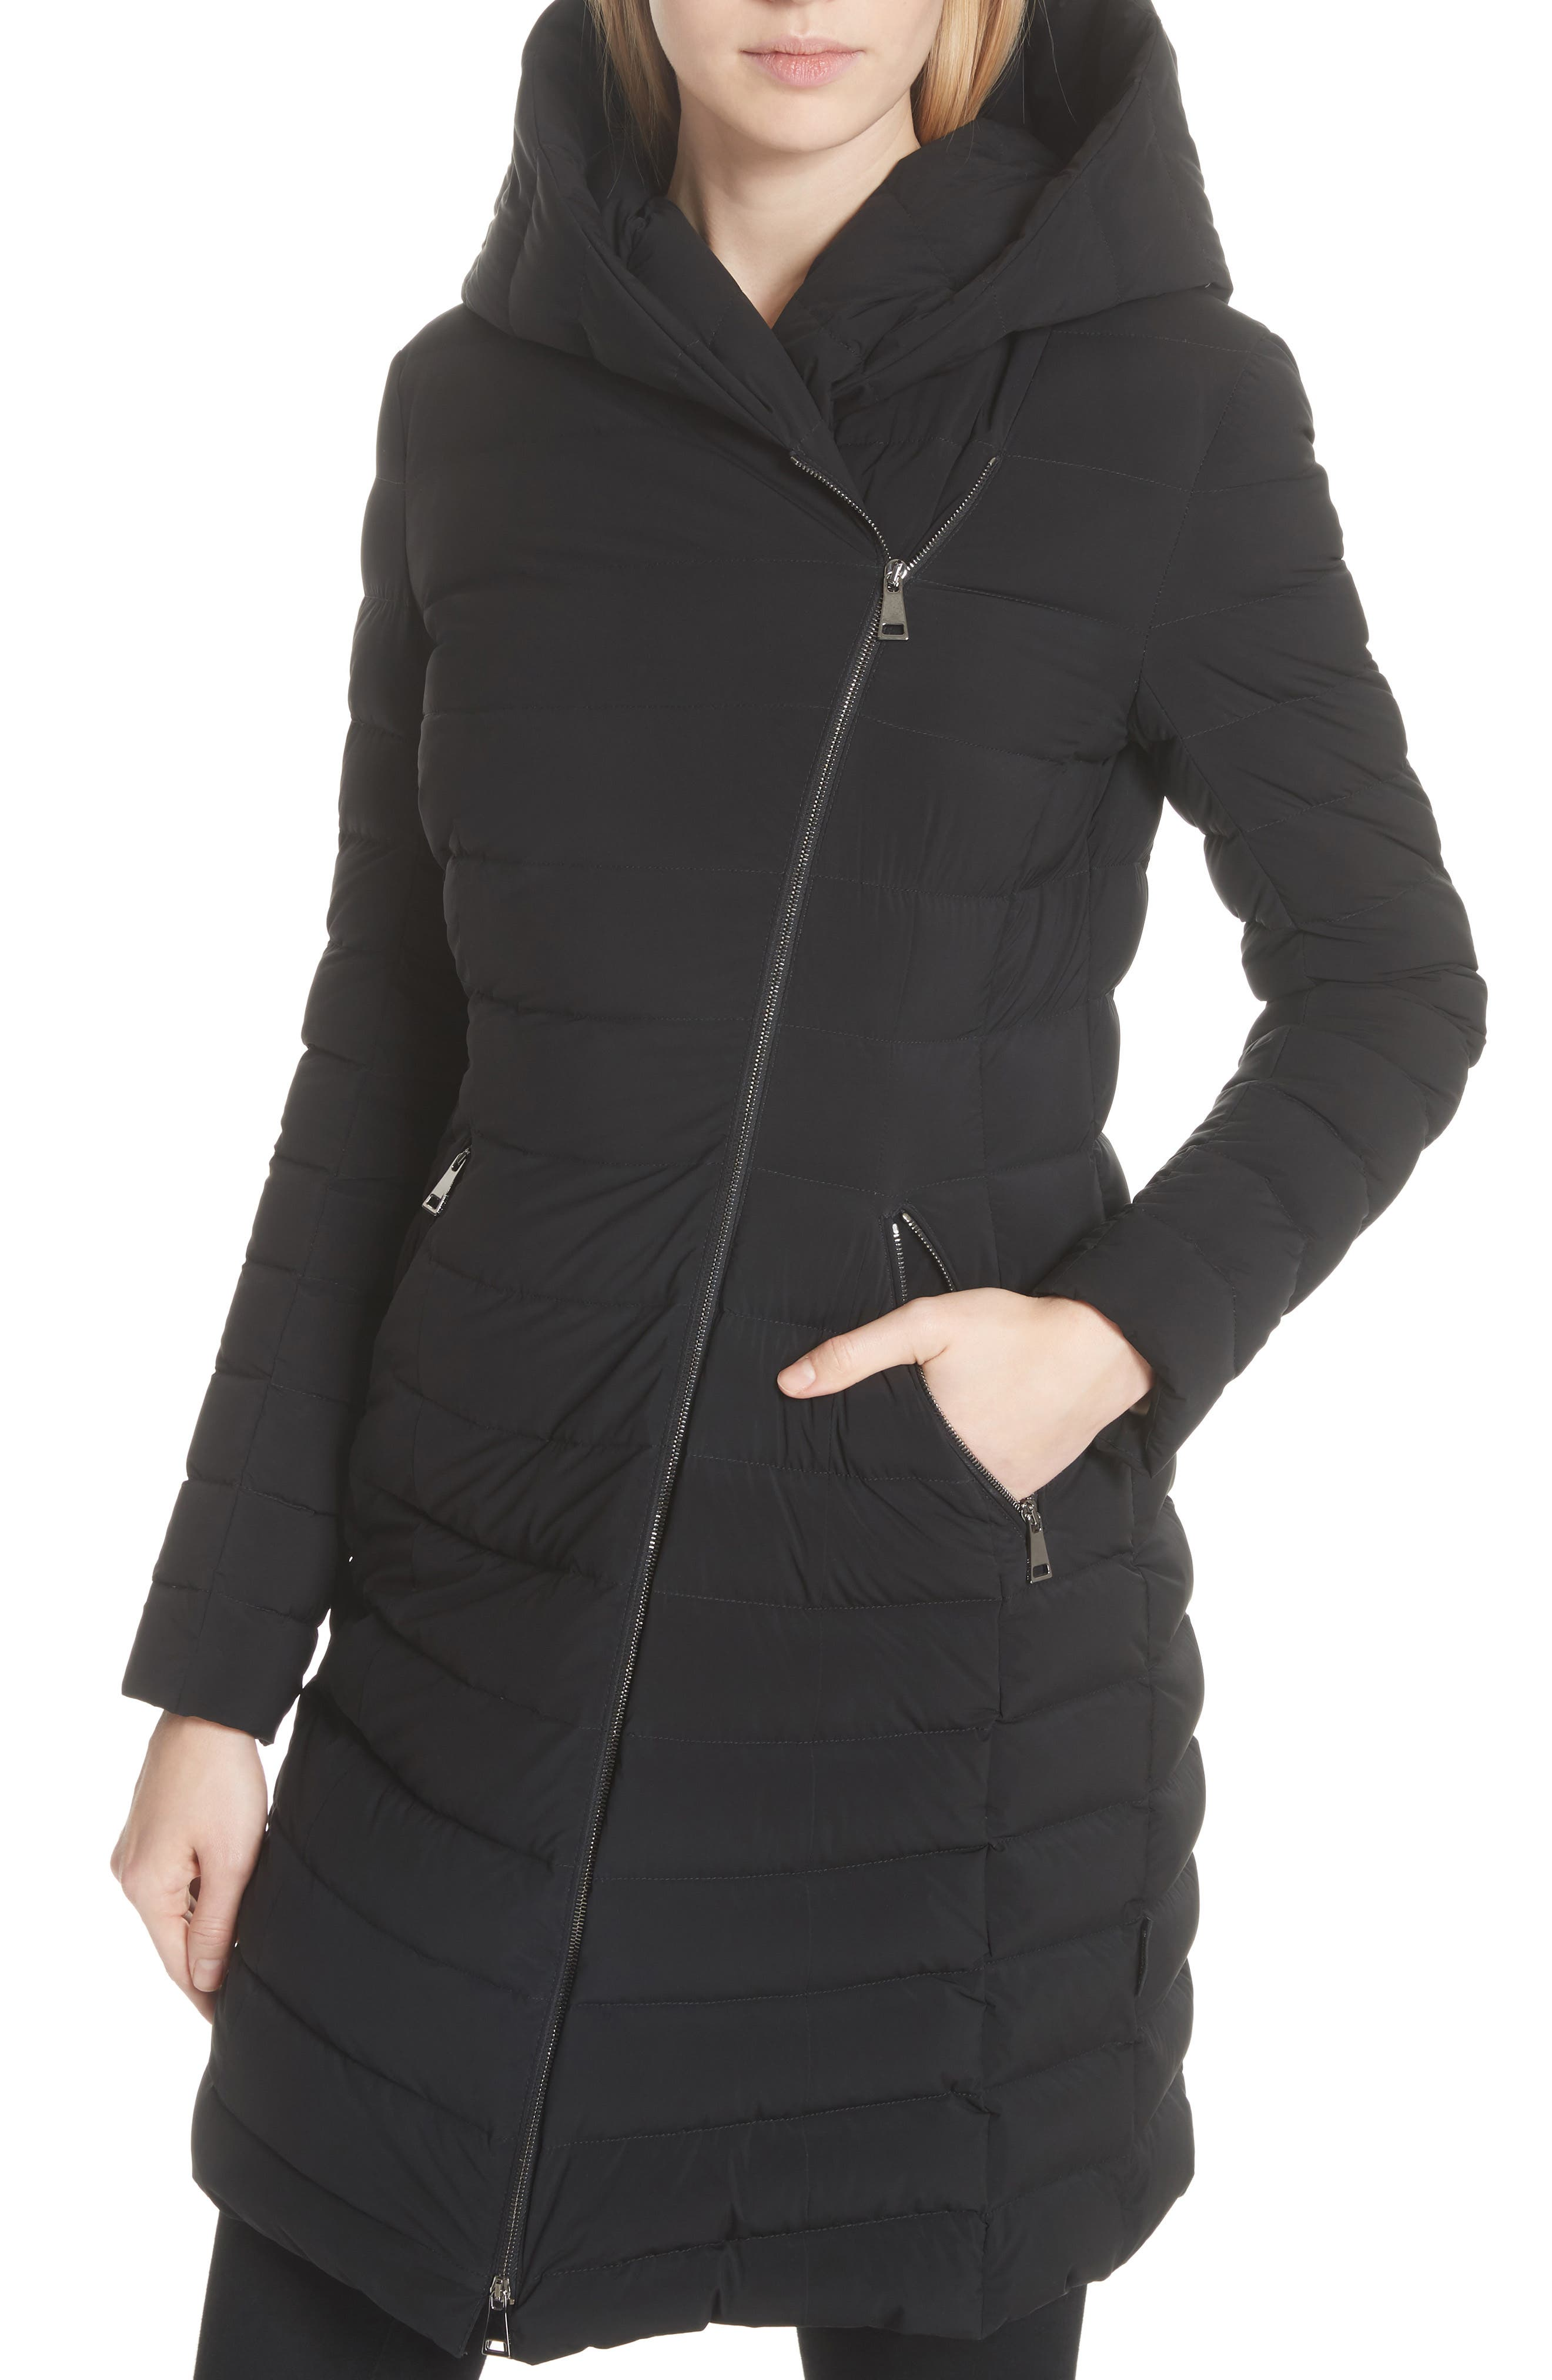 Barge Quilted Down Coat,                             Alternate thumbnail 4, color,                             BLACK